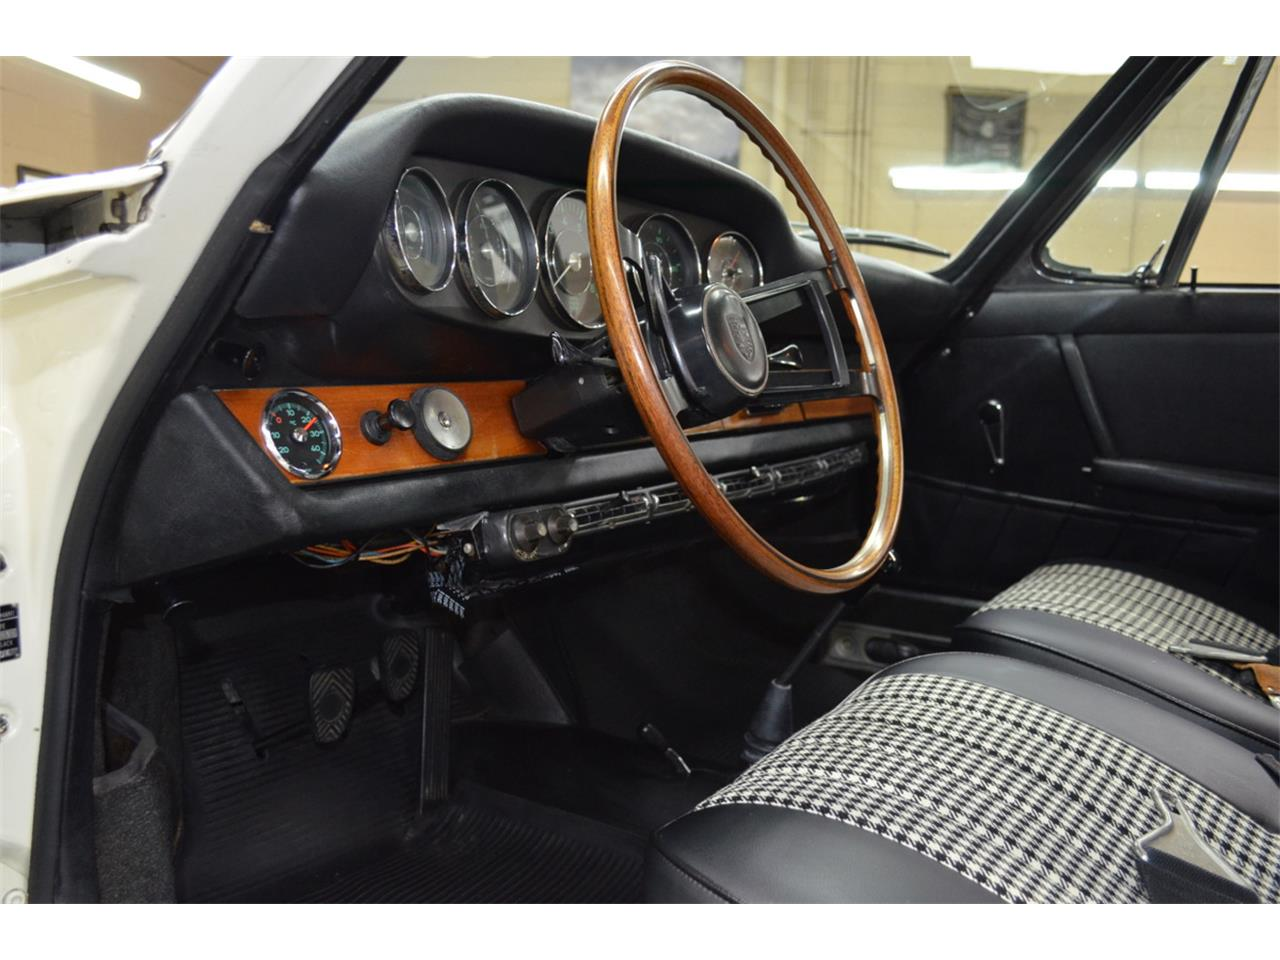 Large Picture of '65 Porsche 911 located in Huntington Station New York Auction Vehicle - QQUH